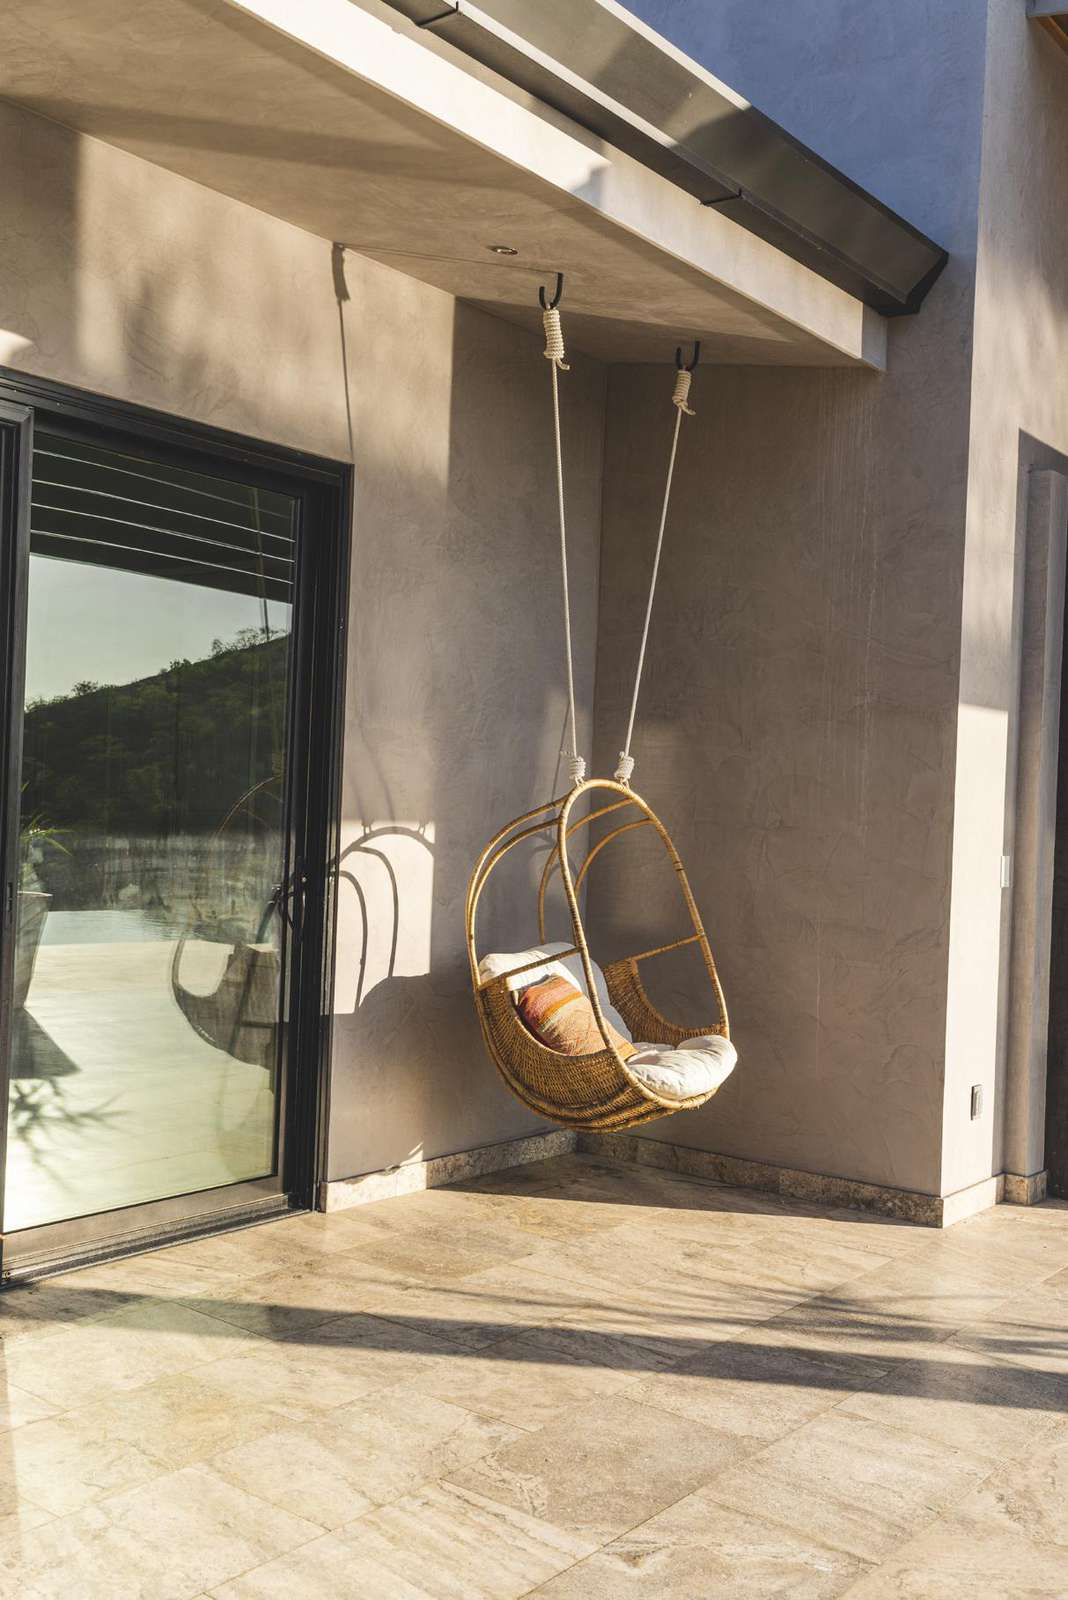 Chair hammock on the covered terrace area